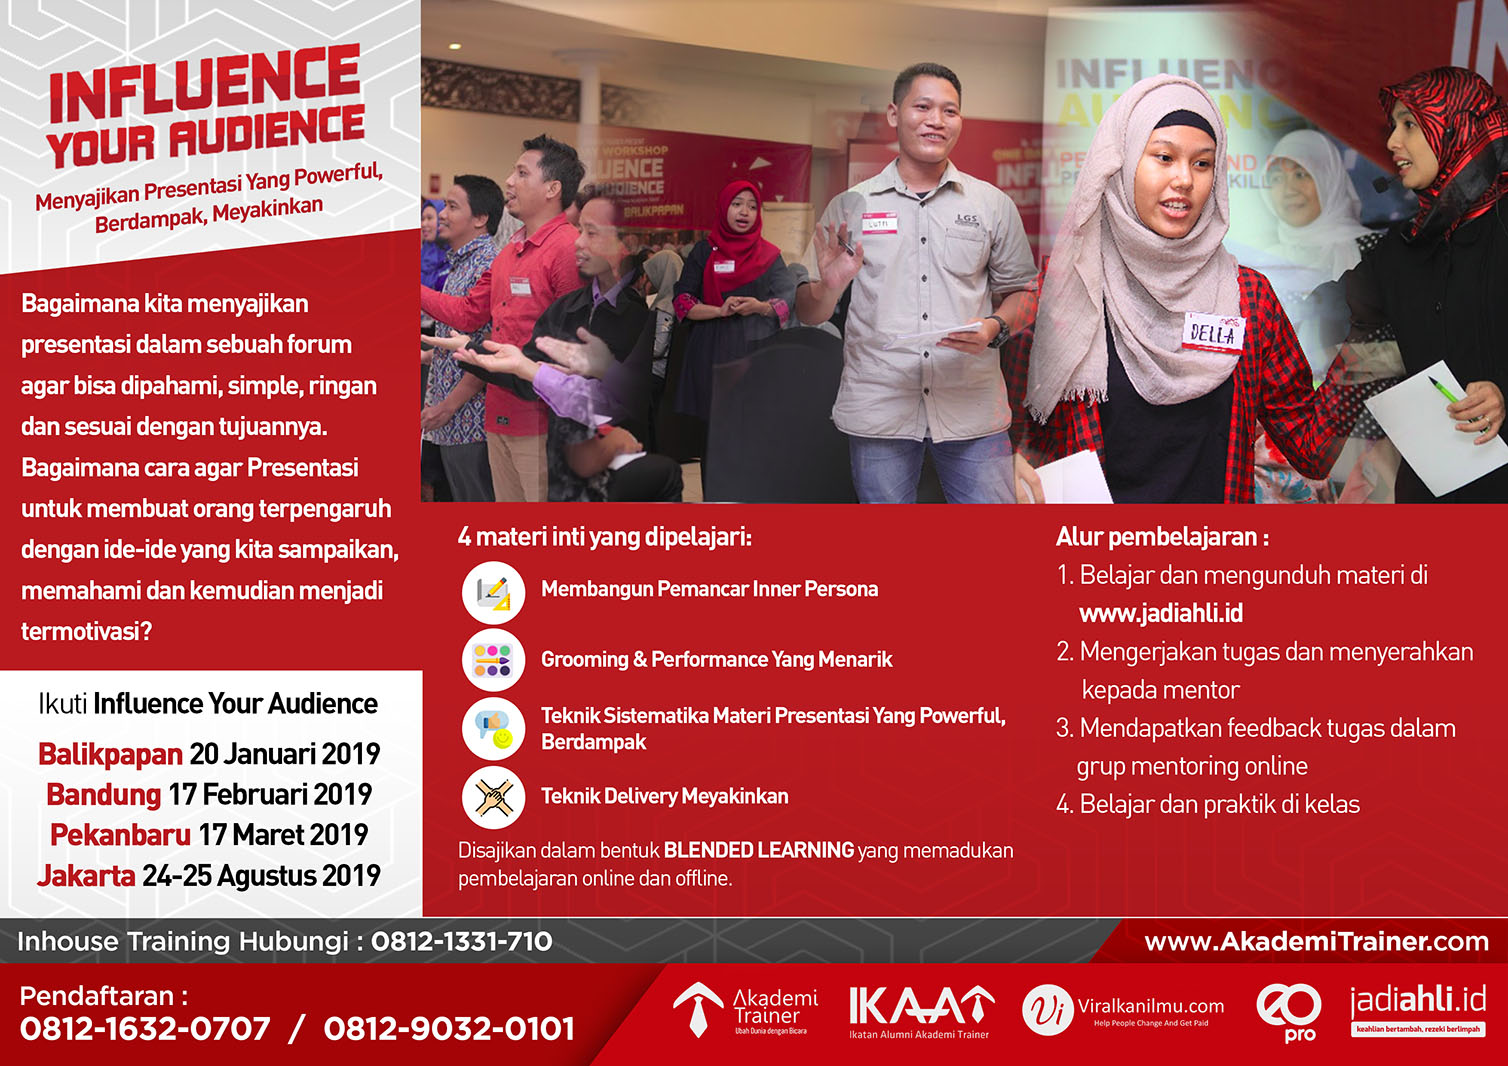 Influence Your Audience roadshow